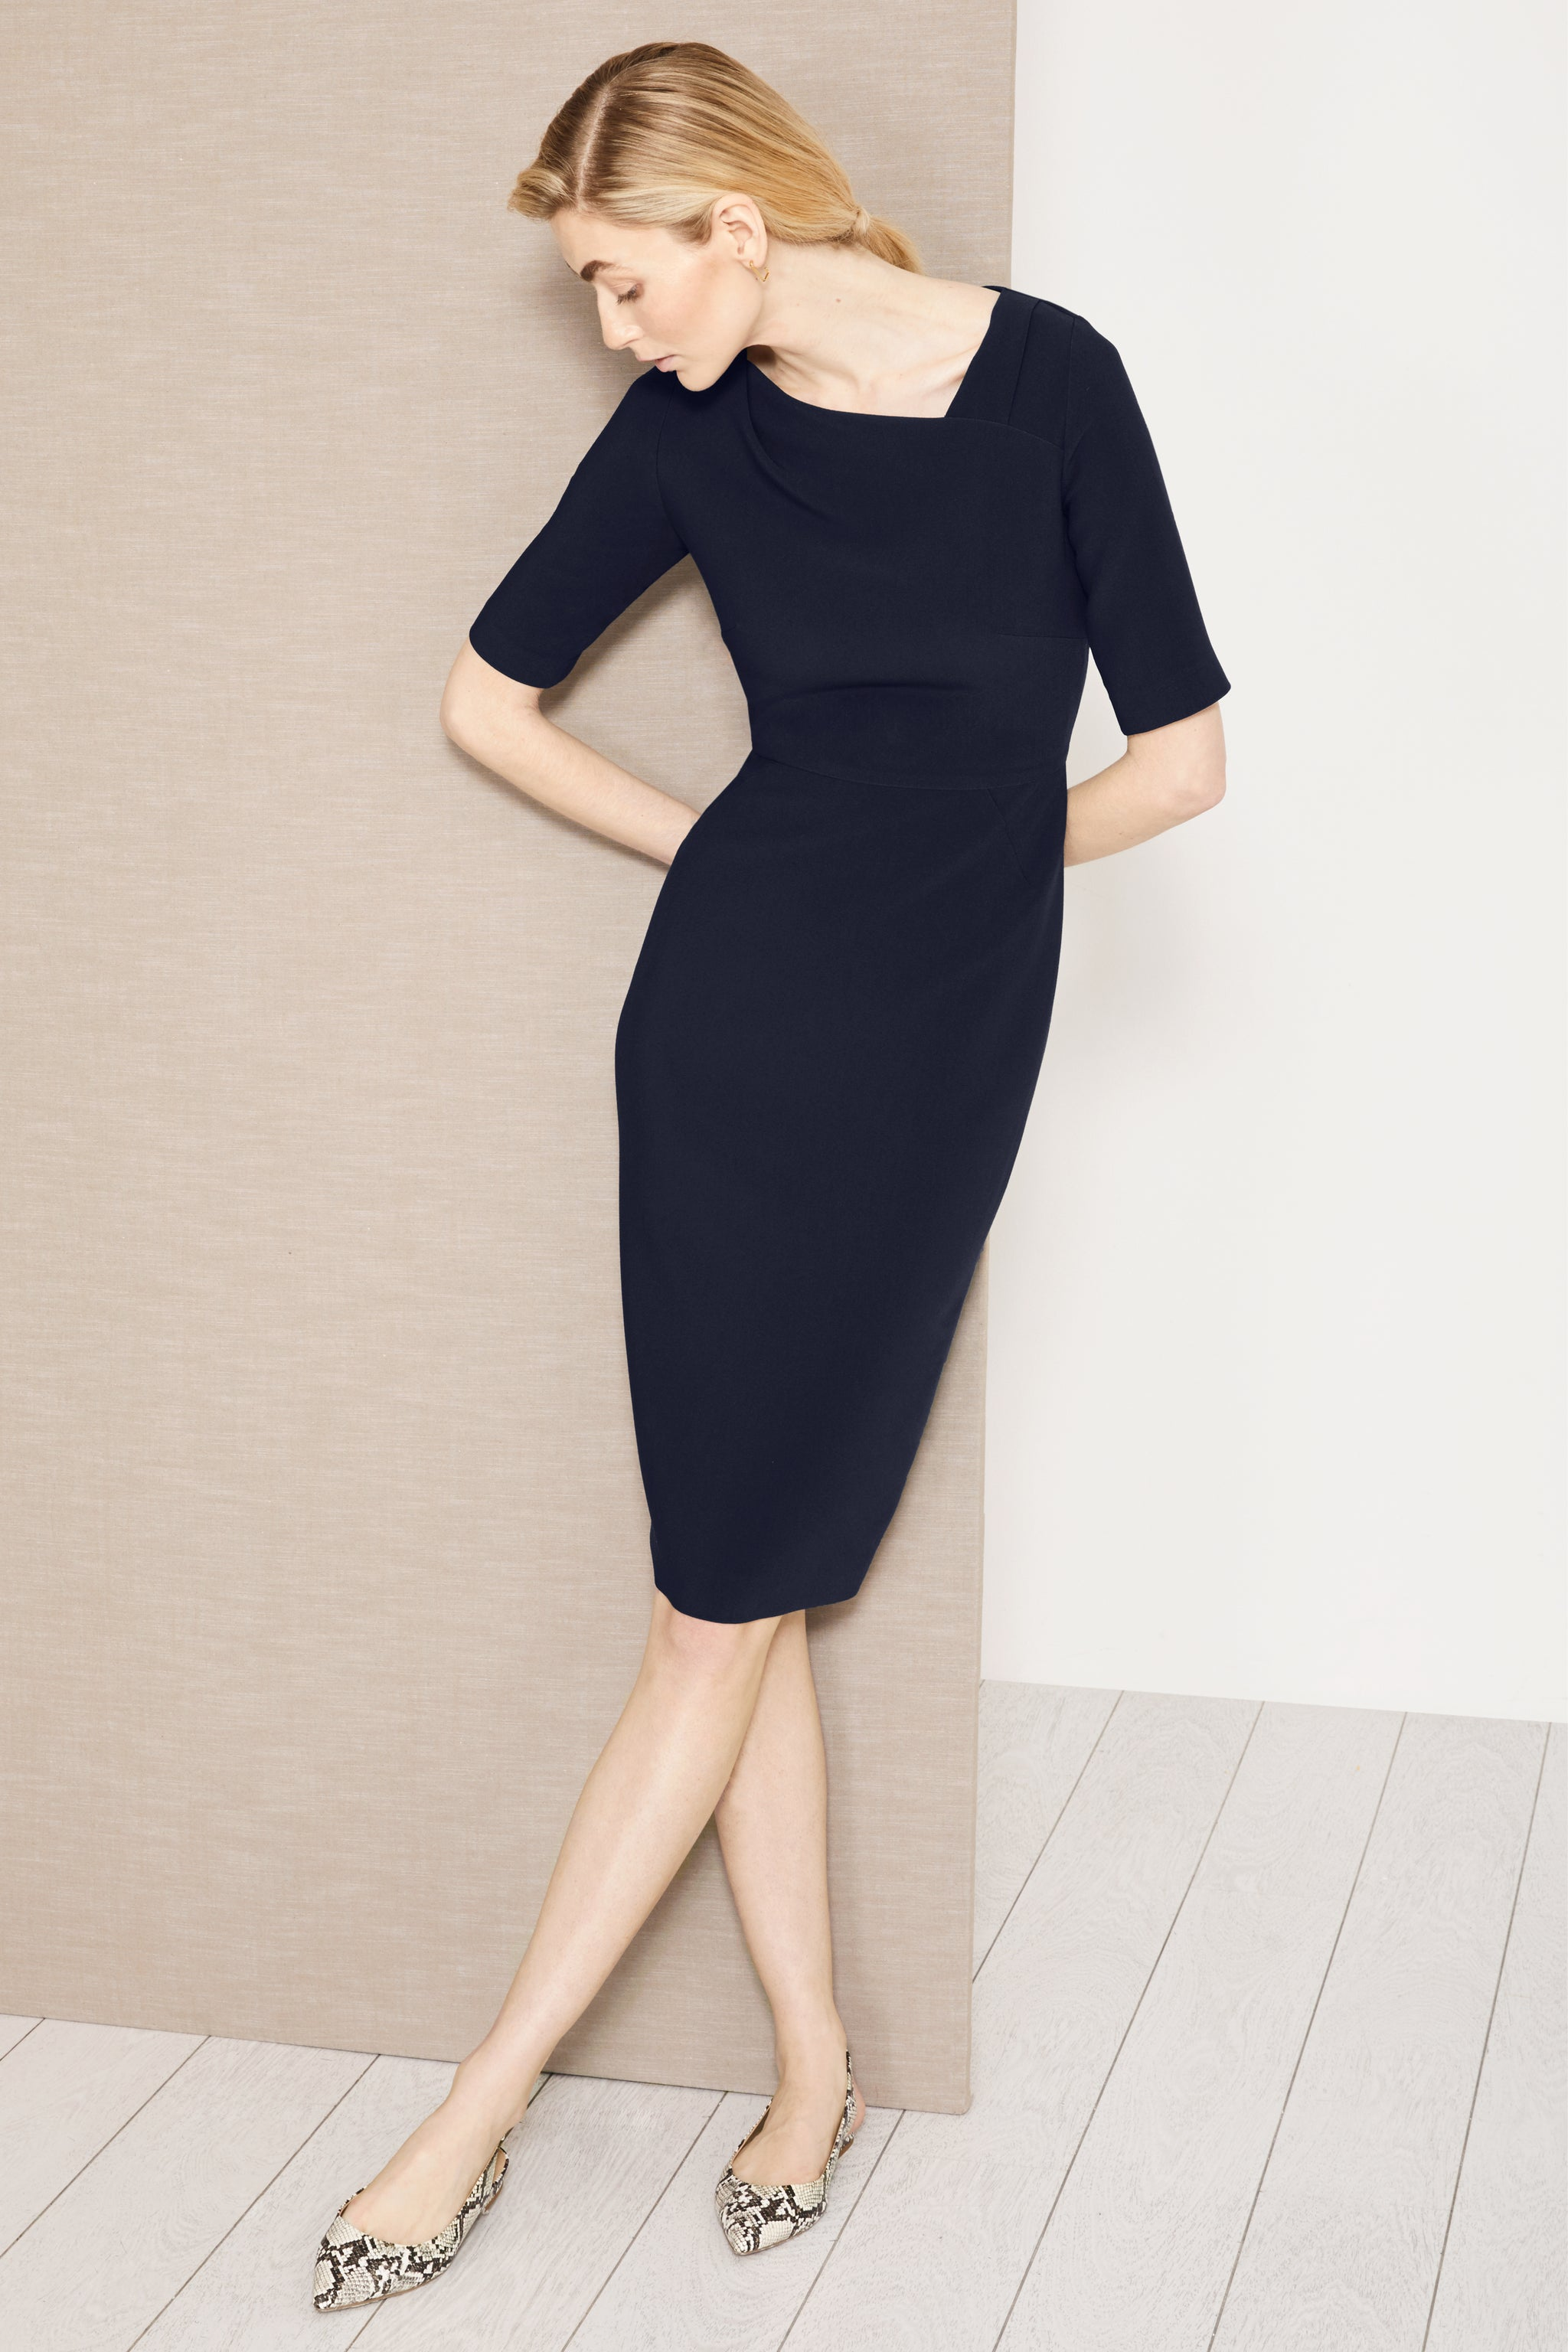 Thurloe Navy Dress